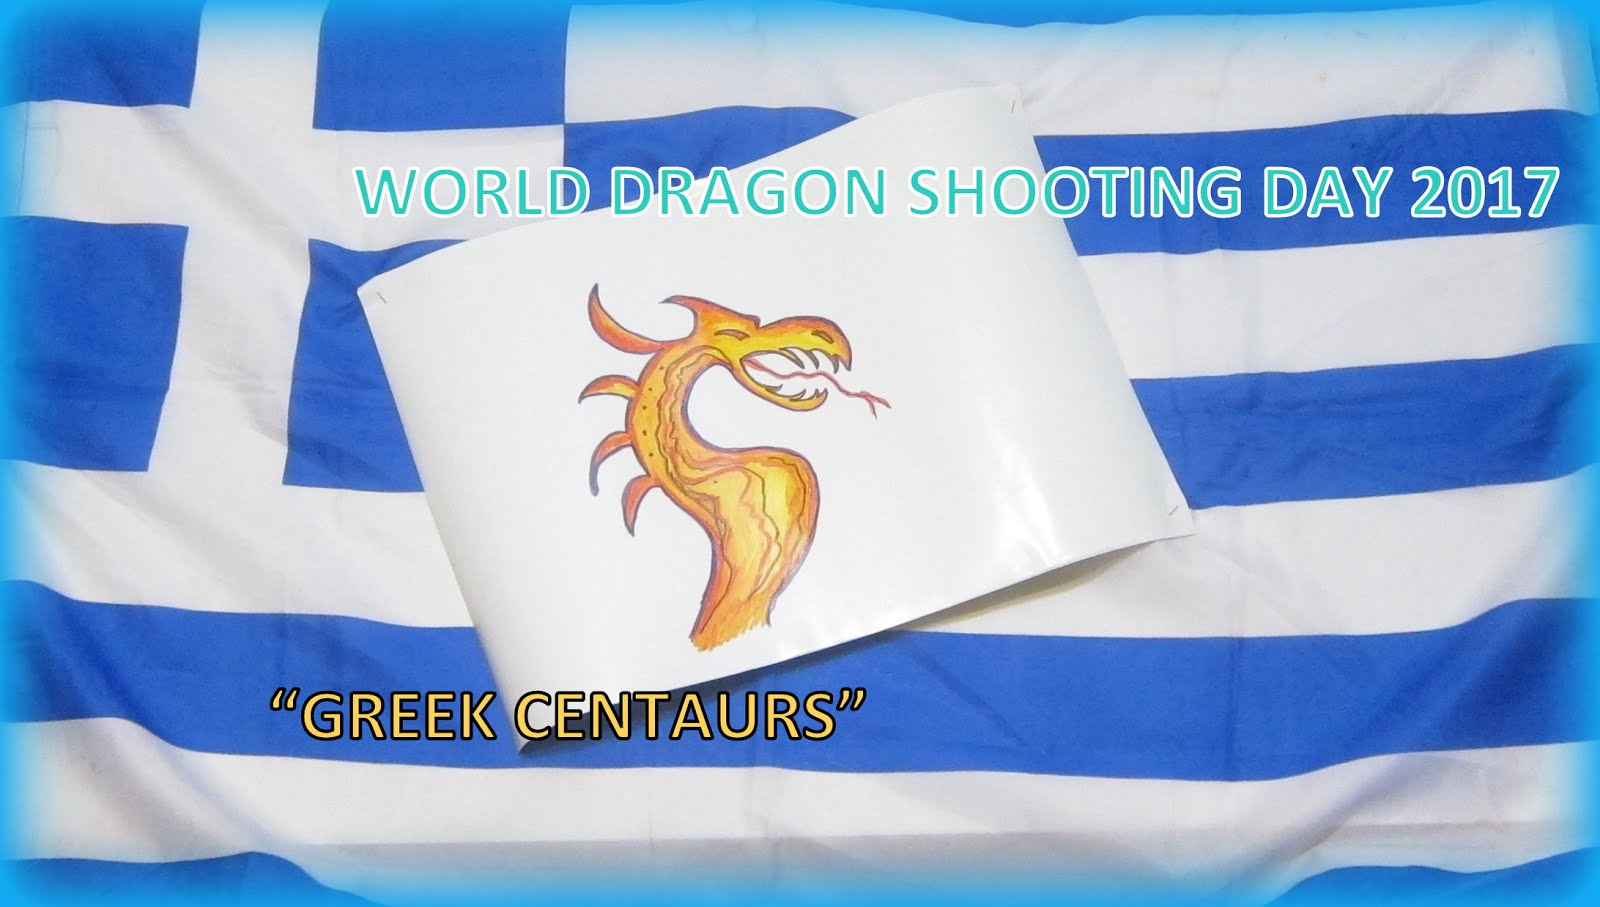 WORLD DRAGON SHOOTING DAY 2017